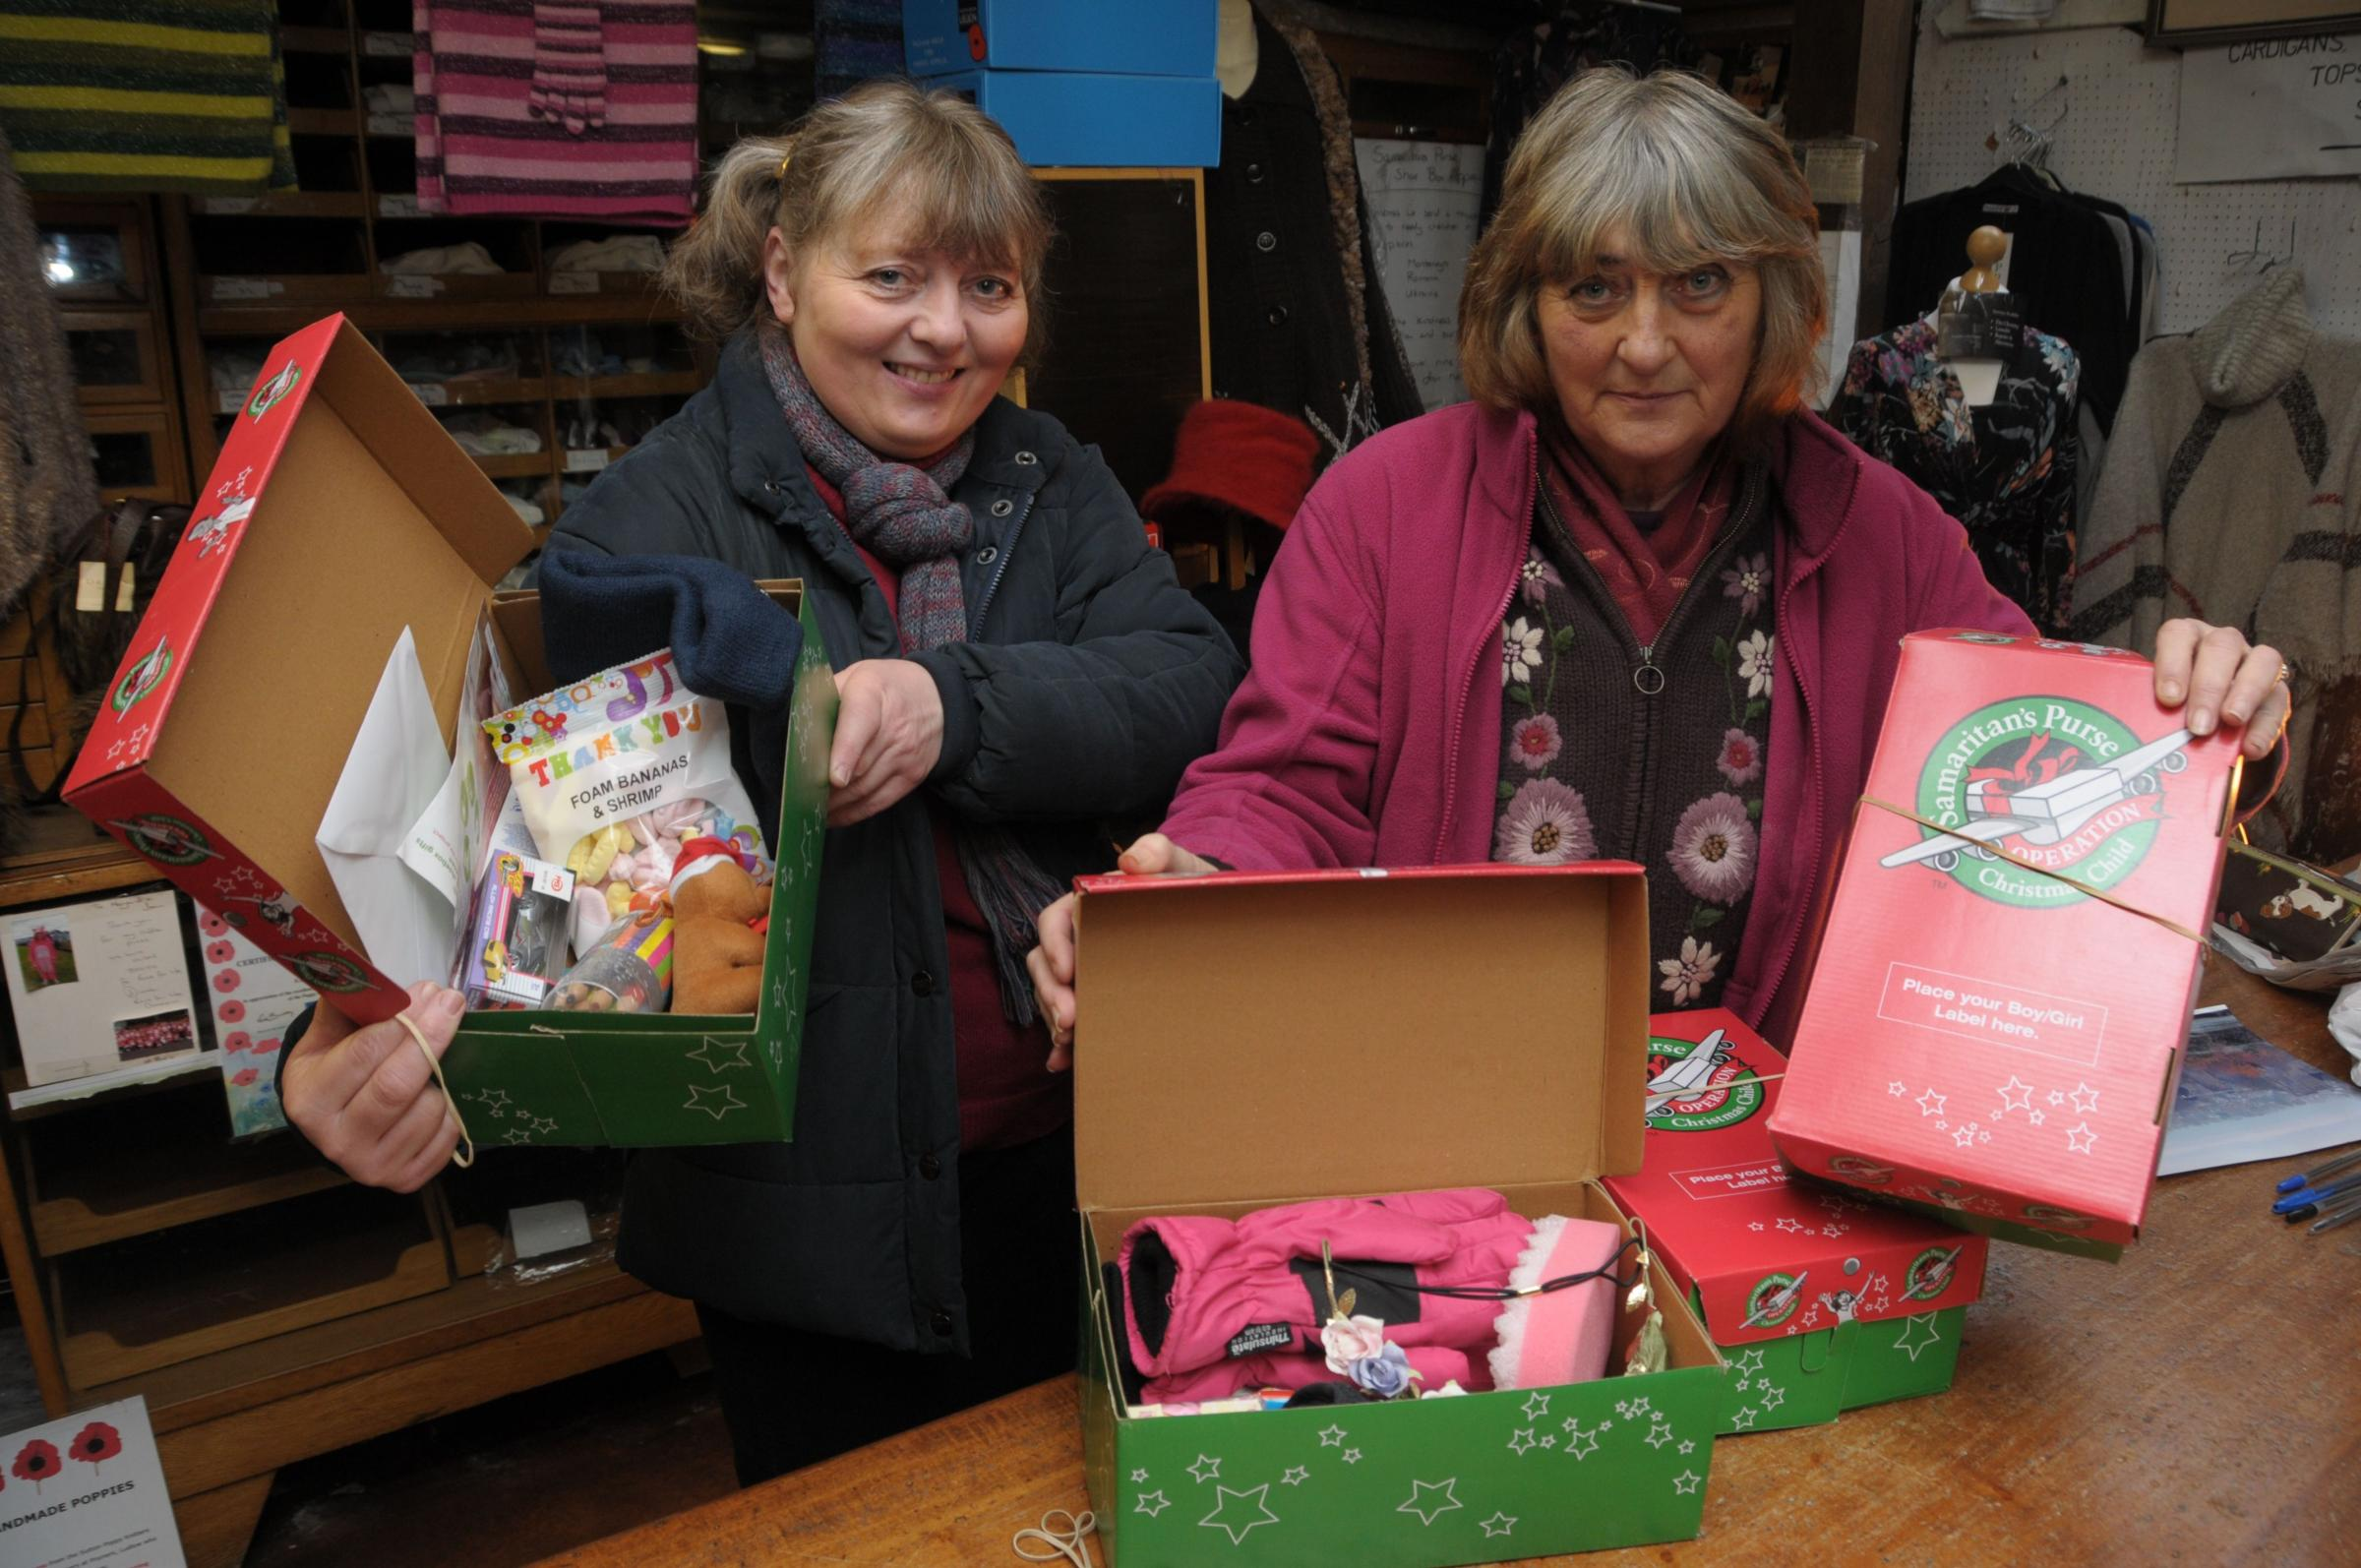 Margaret Edwards and Jean Parker with the last few boxes for the Samaritans Purse Operation Christmas Child. Margaret and Jean would like to thank everyone who have supported and donated to the cause this year which saw 756 boxes sent from Poyners in Ludl